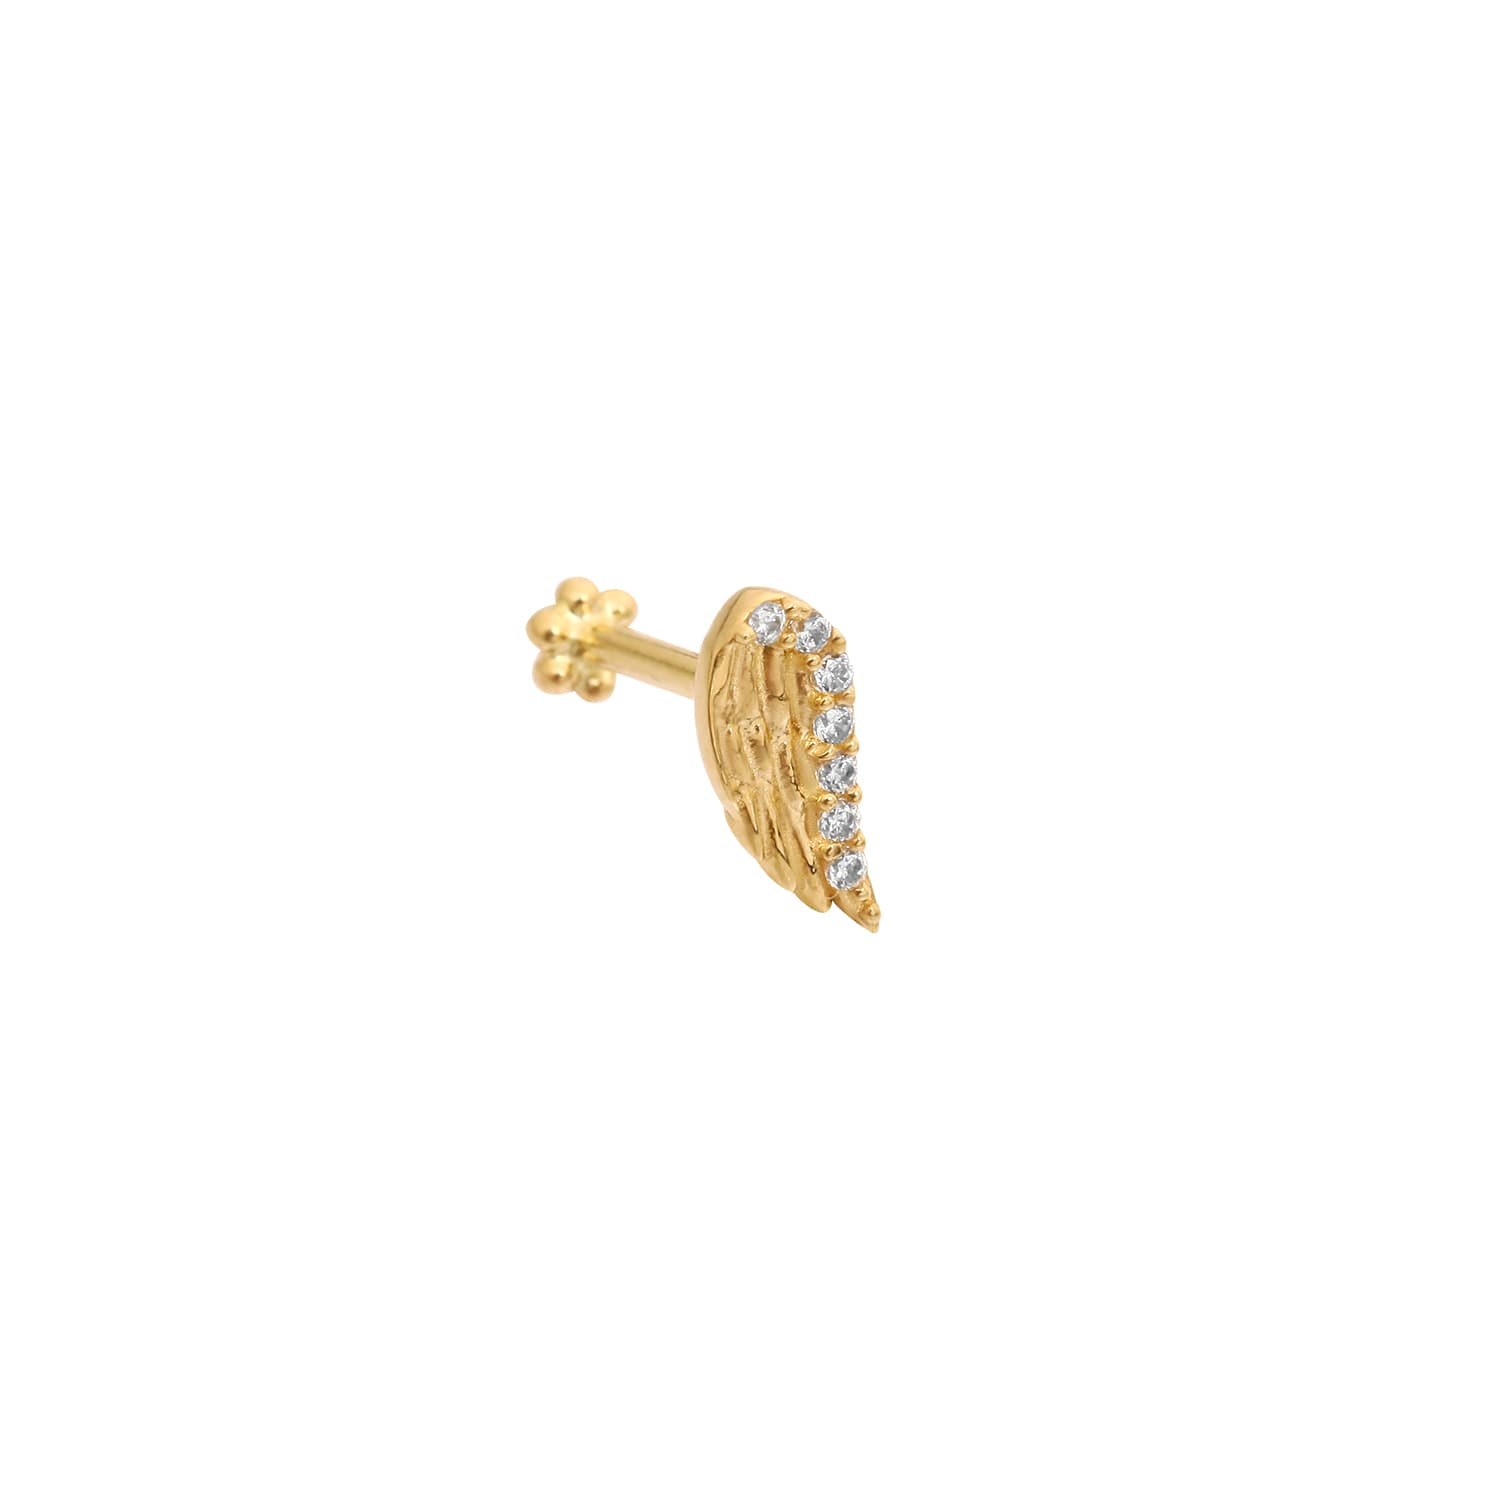 14k gold stone piercing models